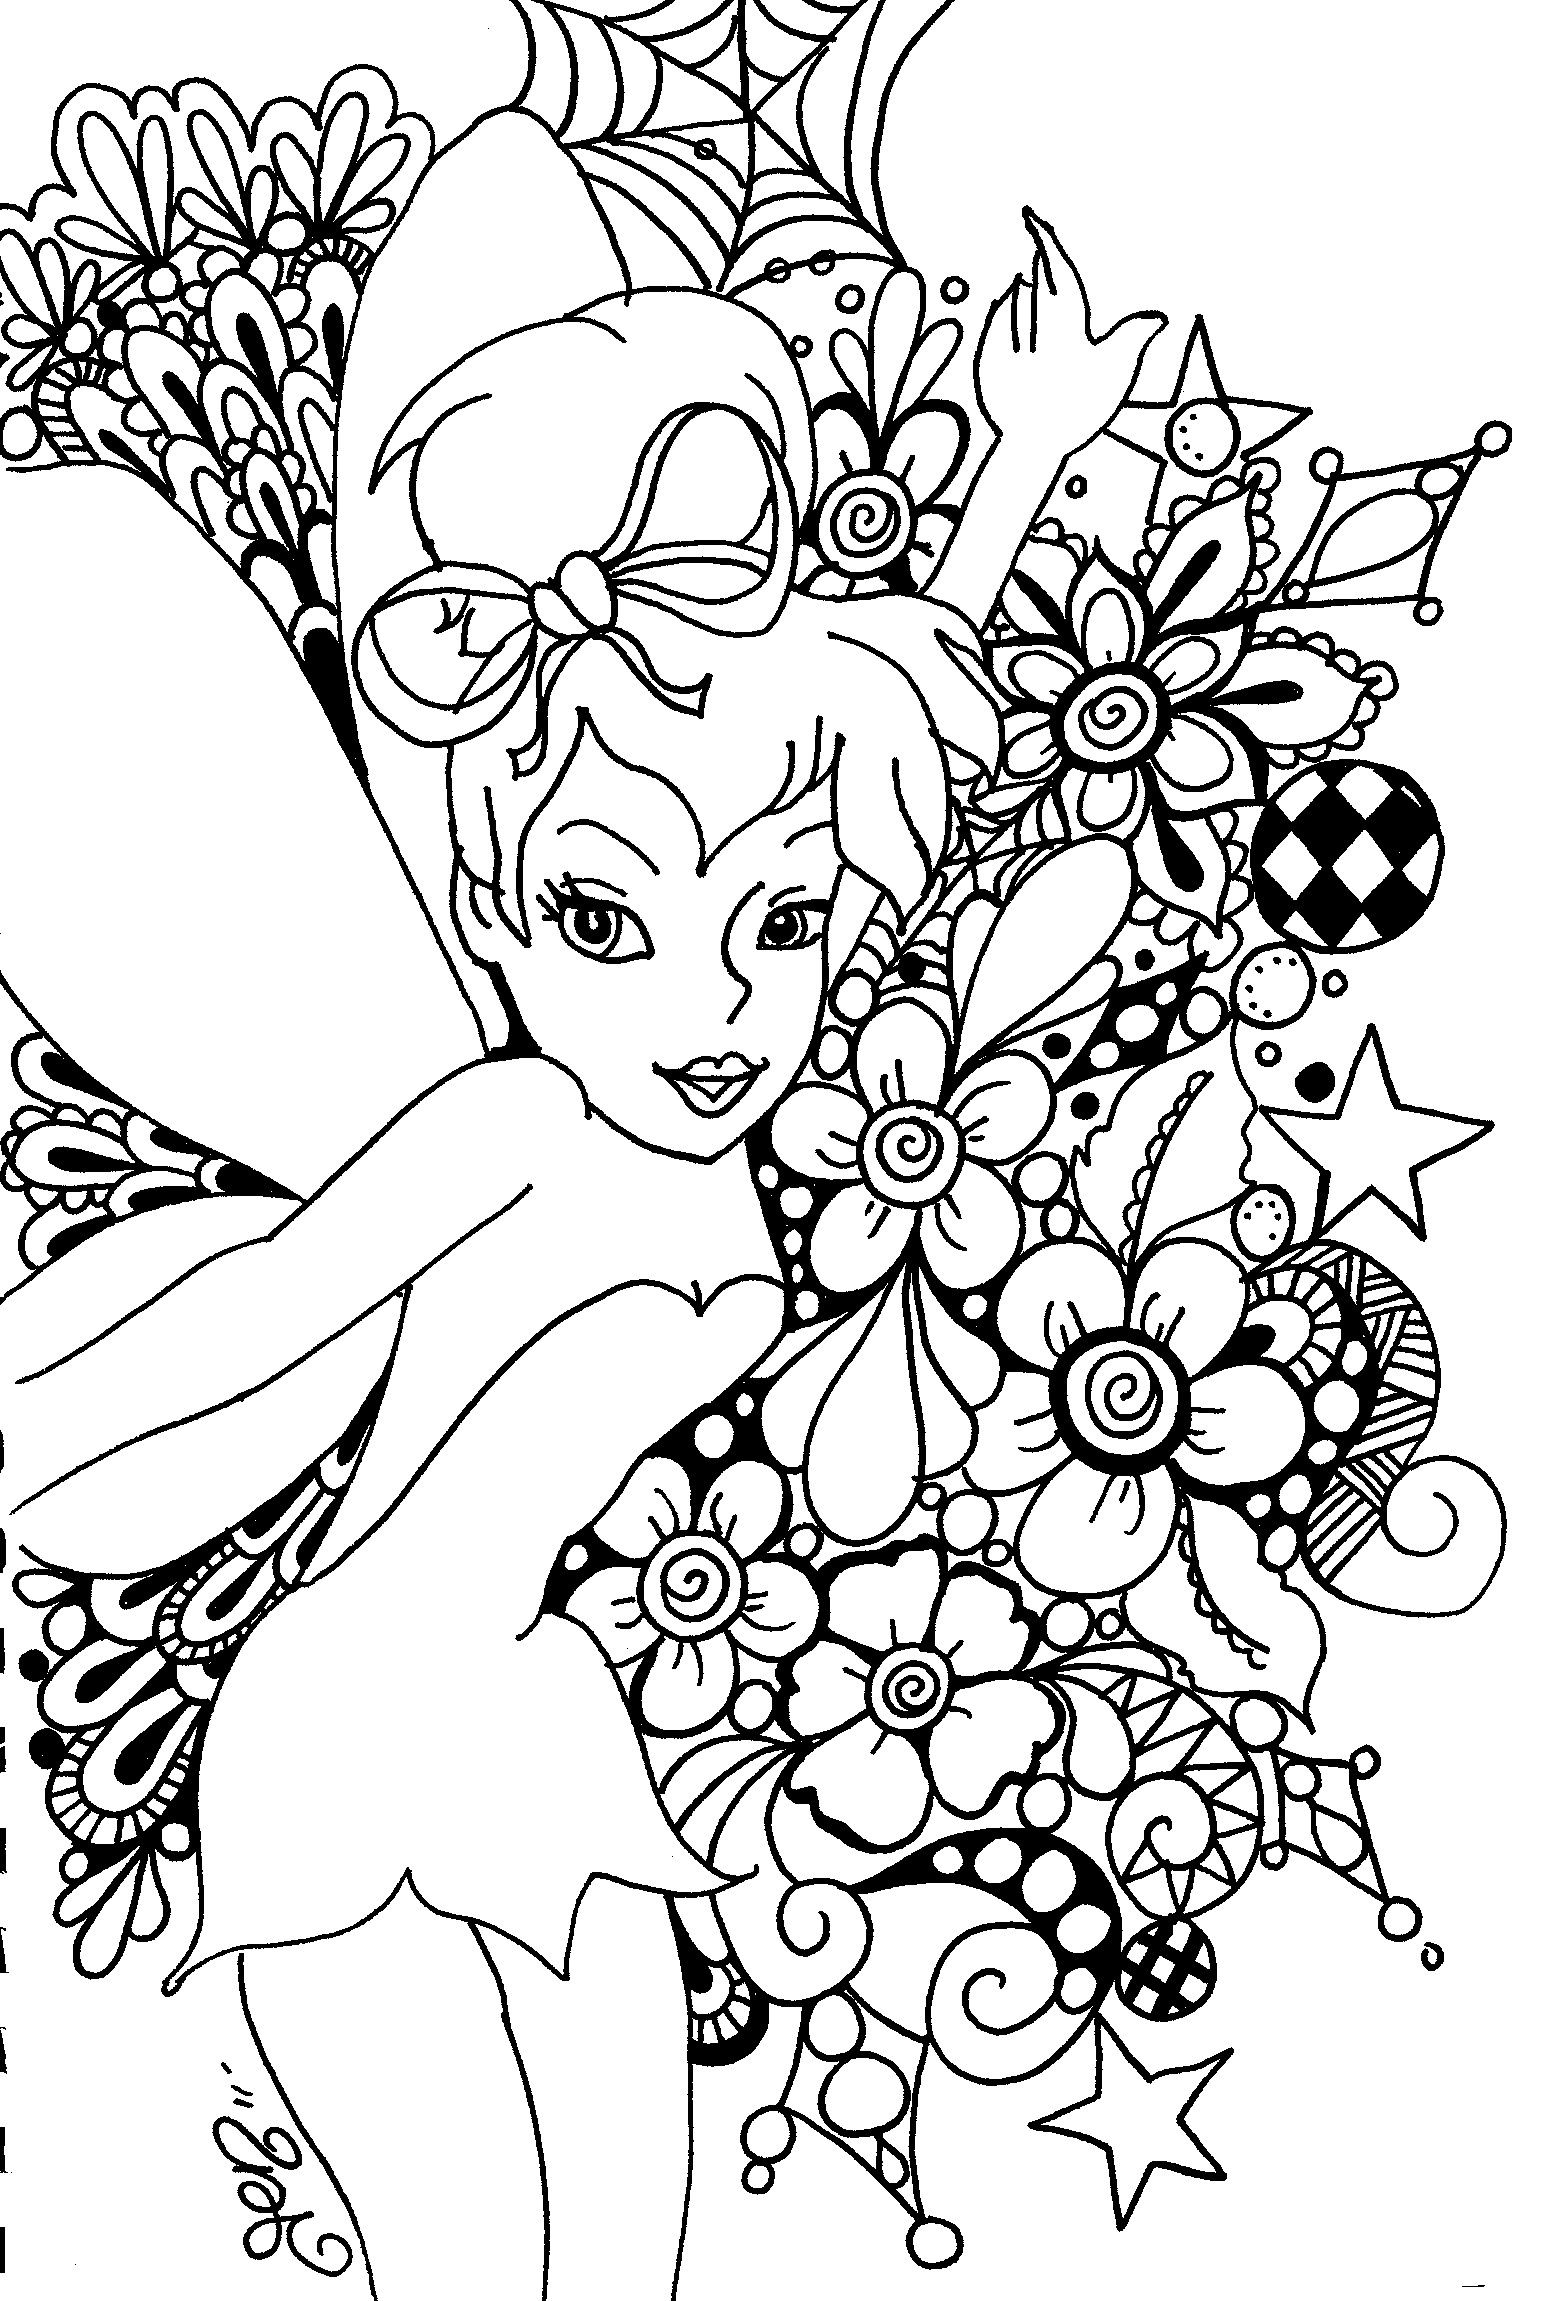 Coloring Pages Free Online Coloring Pages Disney online coloring pages tinkerbell free printable for kids